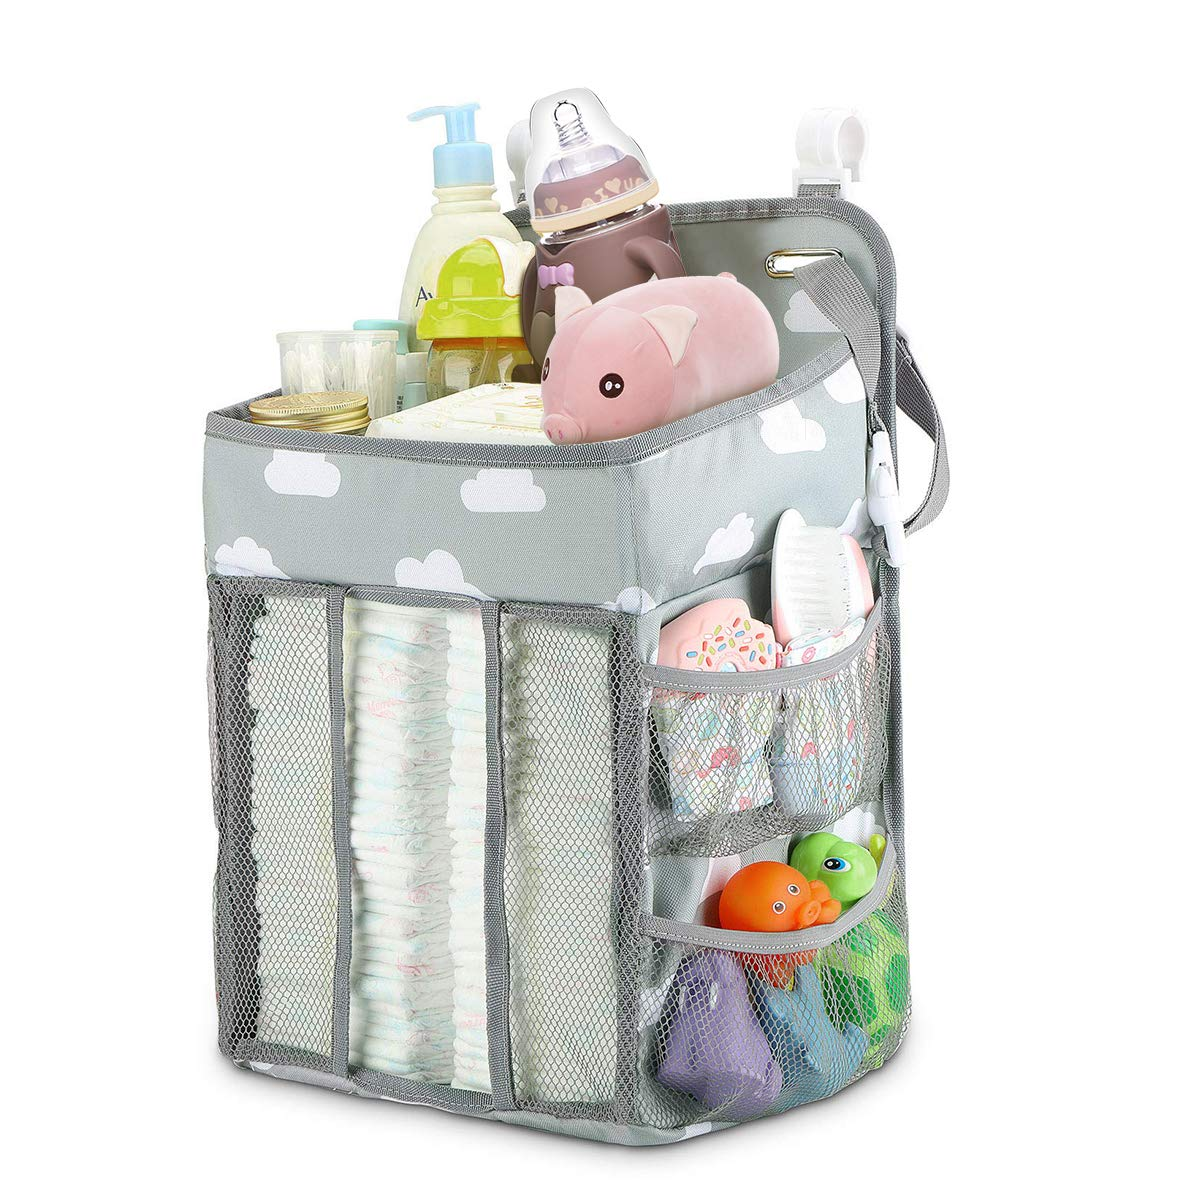 This Diaper Organizer & Caddy Is Perfect!